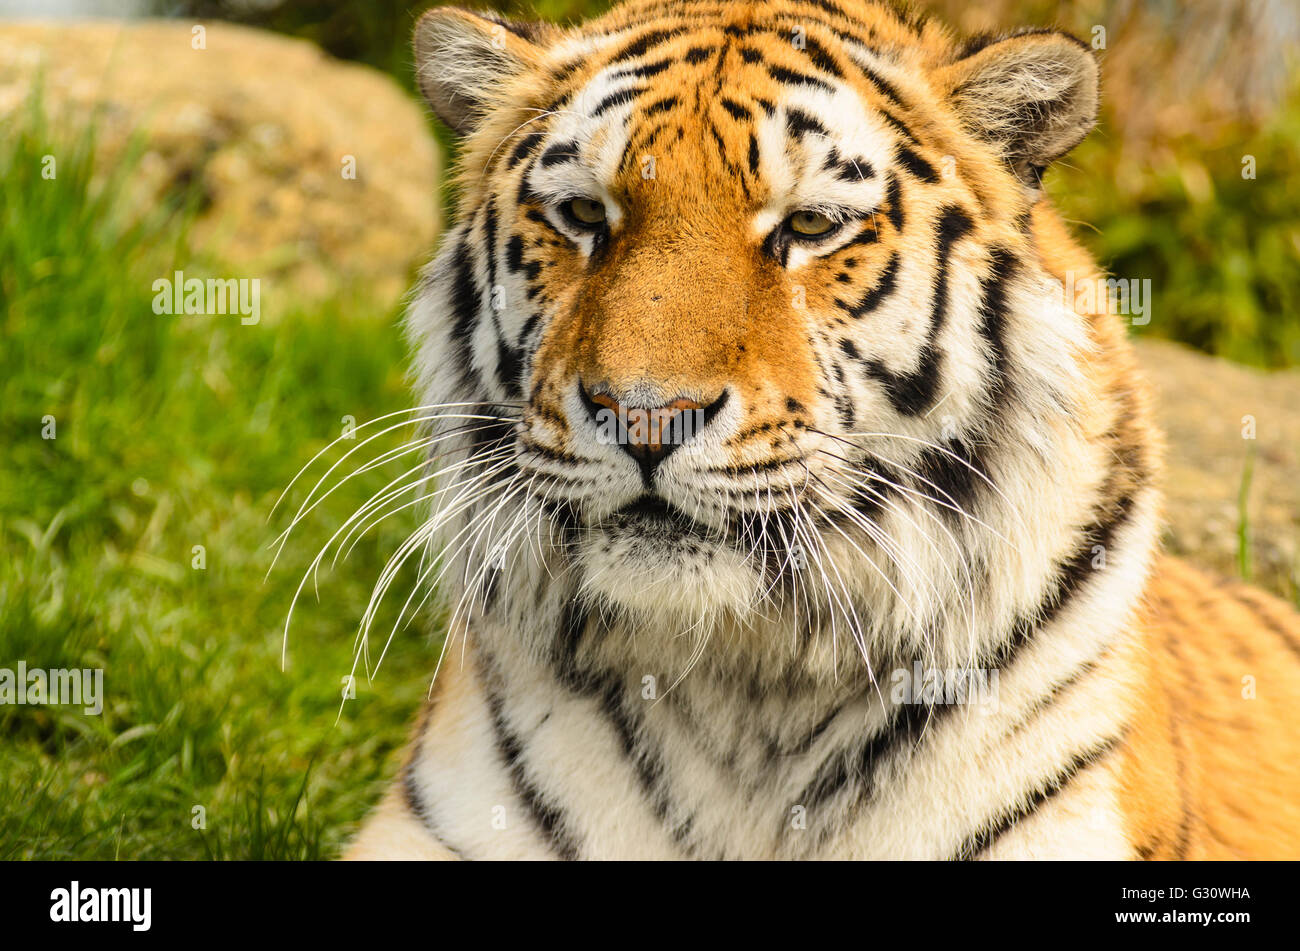 Amur Tiger (Panthera tigris altaica) under controlled conditions at the Wildlife Heritage Foundation Smarden Kent - Stock Image